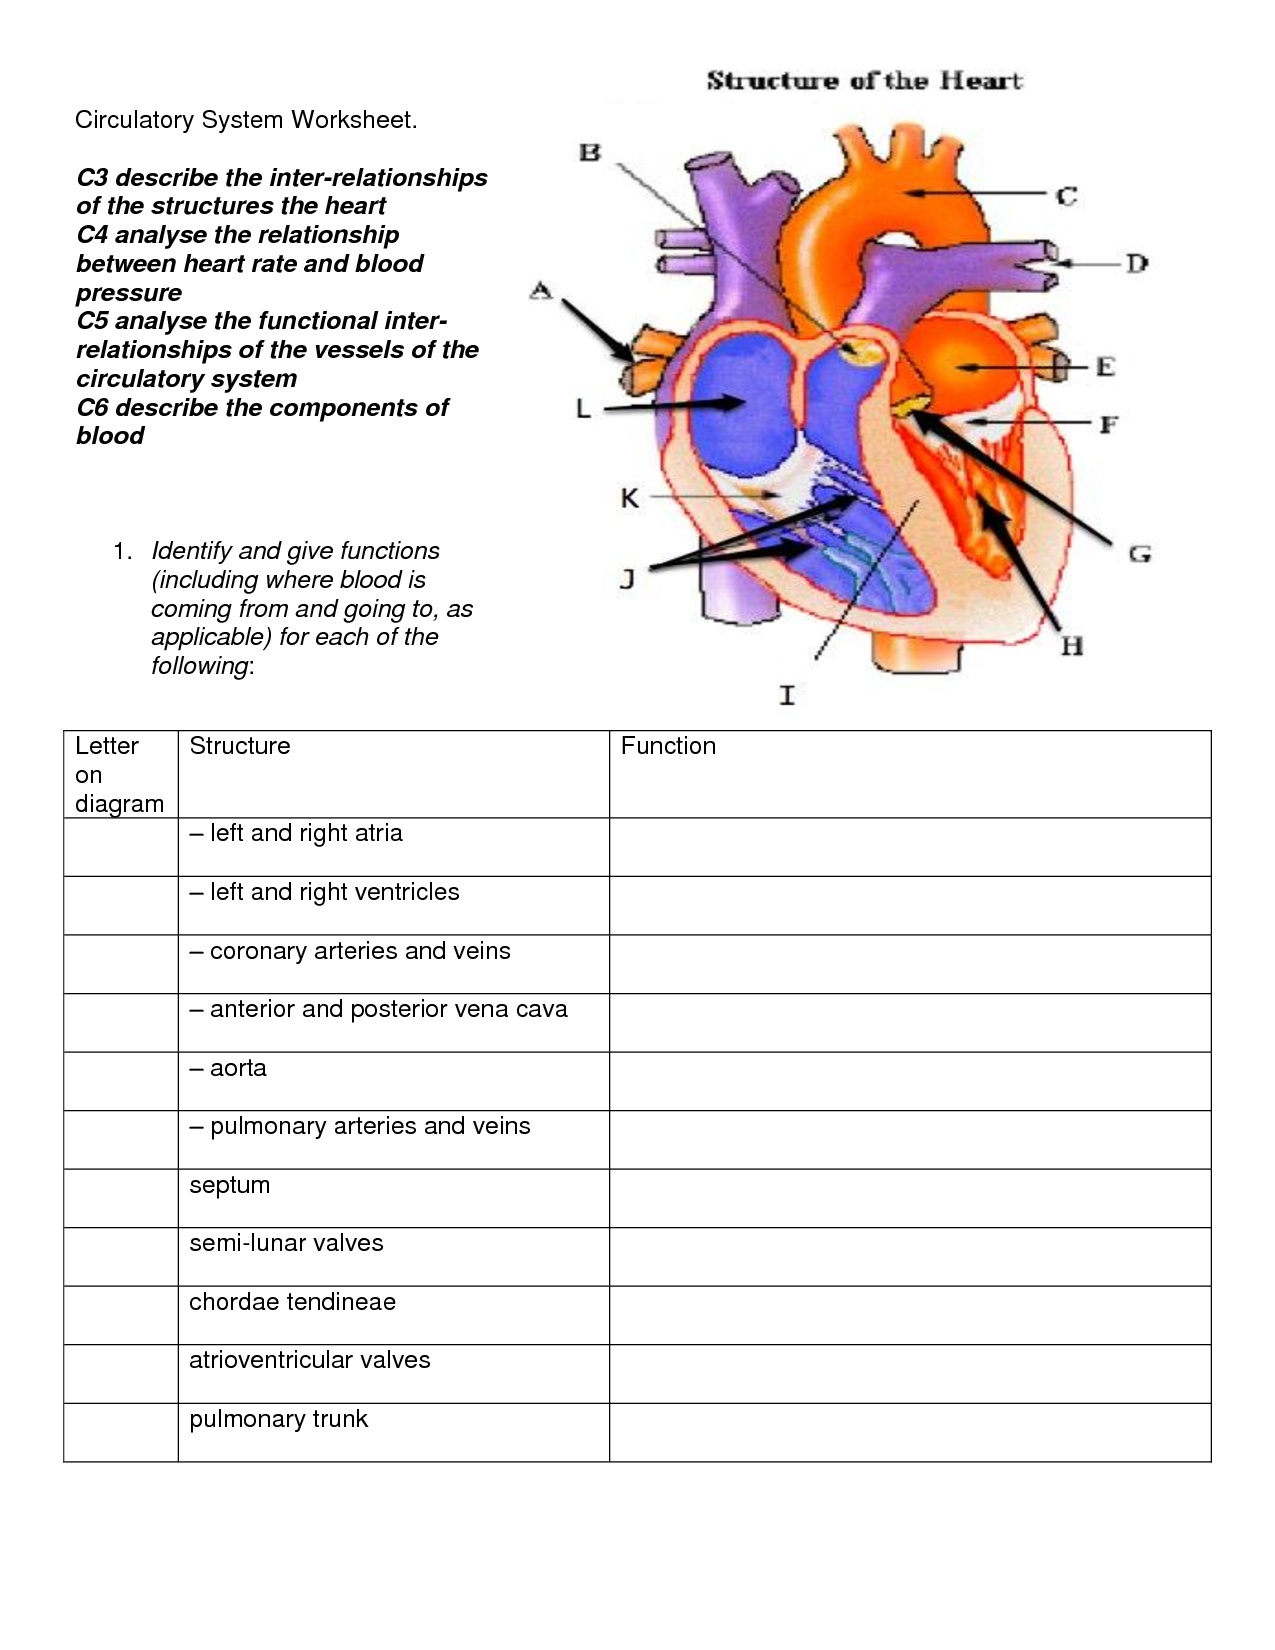 Circulatory system crossword puzzle and answers crossword puzzle crossword puzzle gallery circulatory system diagram worksheet circulatory system worksheet of circulatory system crossword puzzle ccuart Gallery